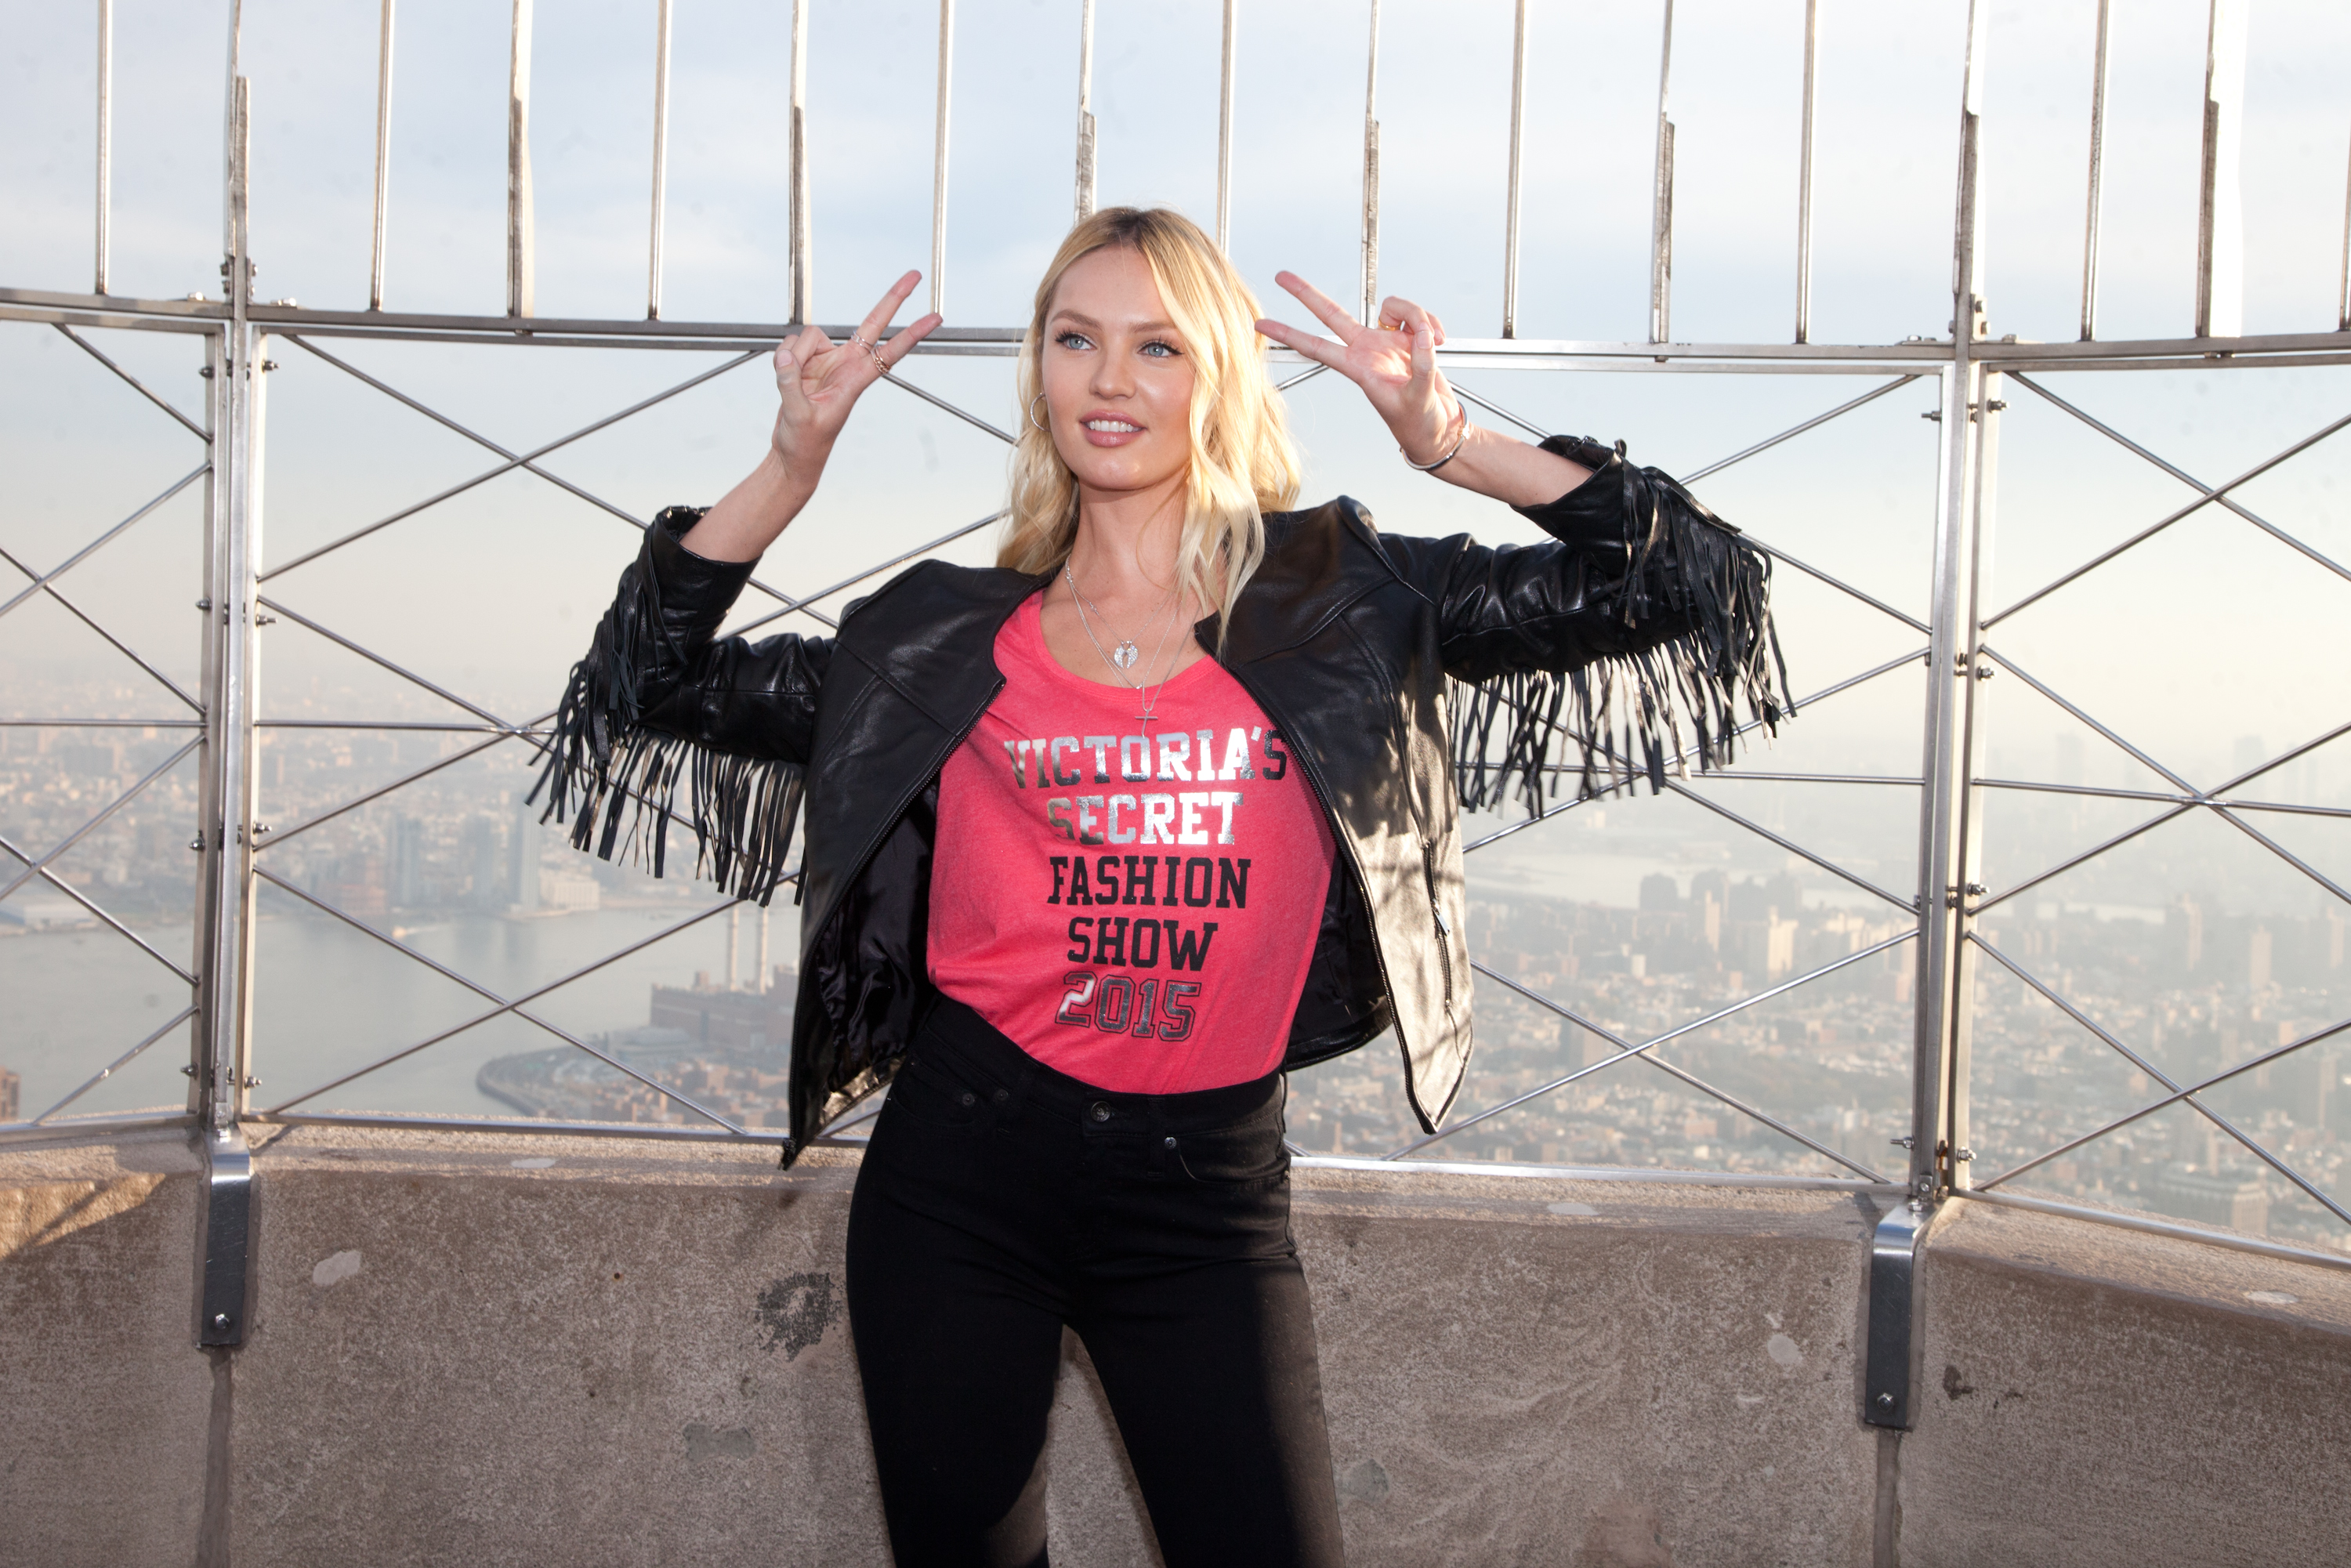 Candice Swanepoel at the Empire State Building to promote the Victorias Secret Fashion Show in NYC  Featuring: Candice Swanepoel Where: New York, New York, United States When: 07 Dec 2015 Credit: Kyle Blair/WENN.com